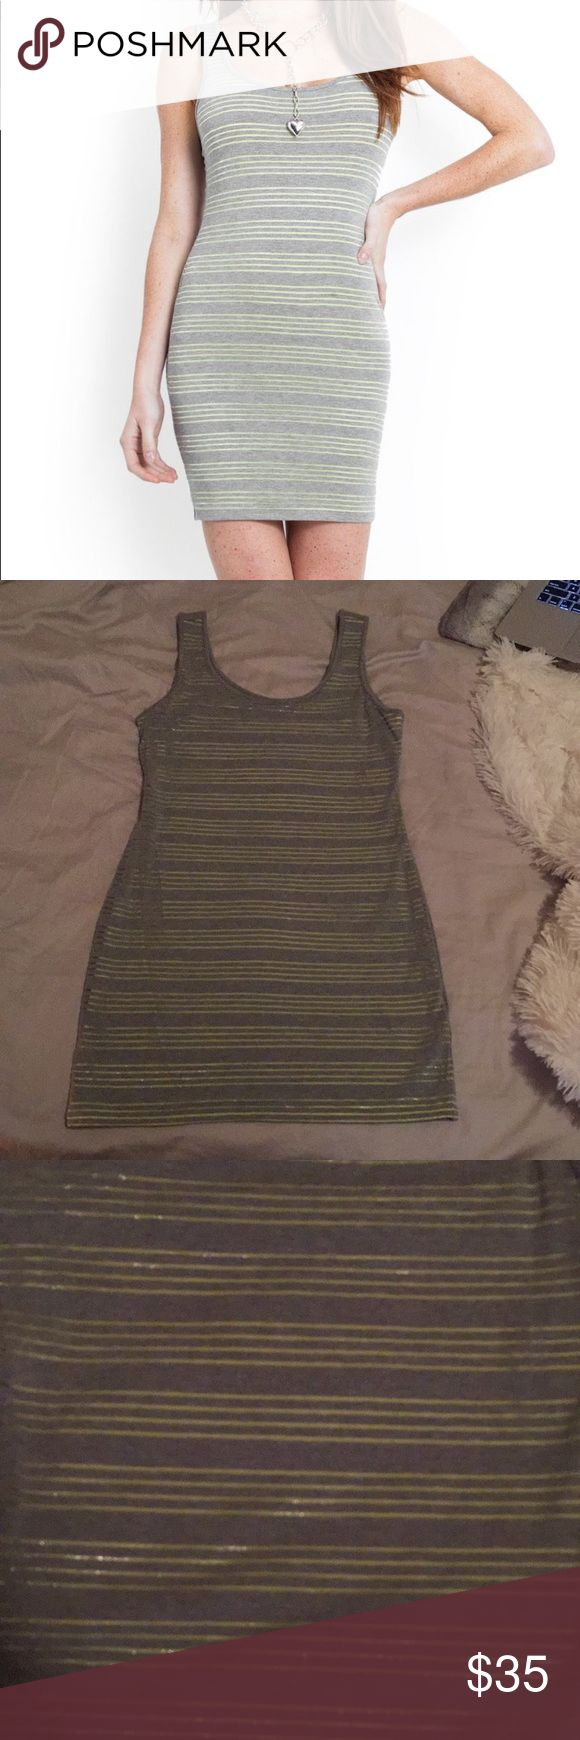 NWT Guess Contrast Layered Jersey Tank Dress New with tags, never worn. Gray with green stripes jersey tank dress. Super comfortable, can be casual or dressed up! Size large, hugs your curves perfectly. Guess Dresses Mini